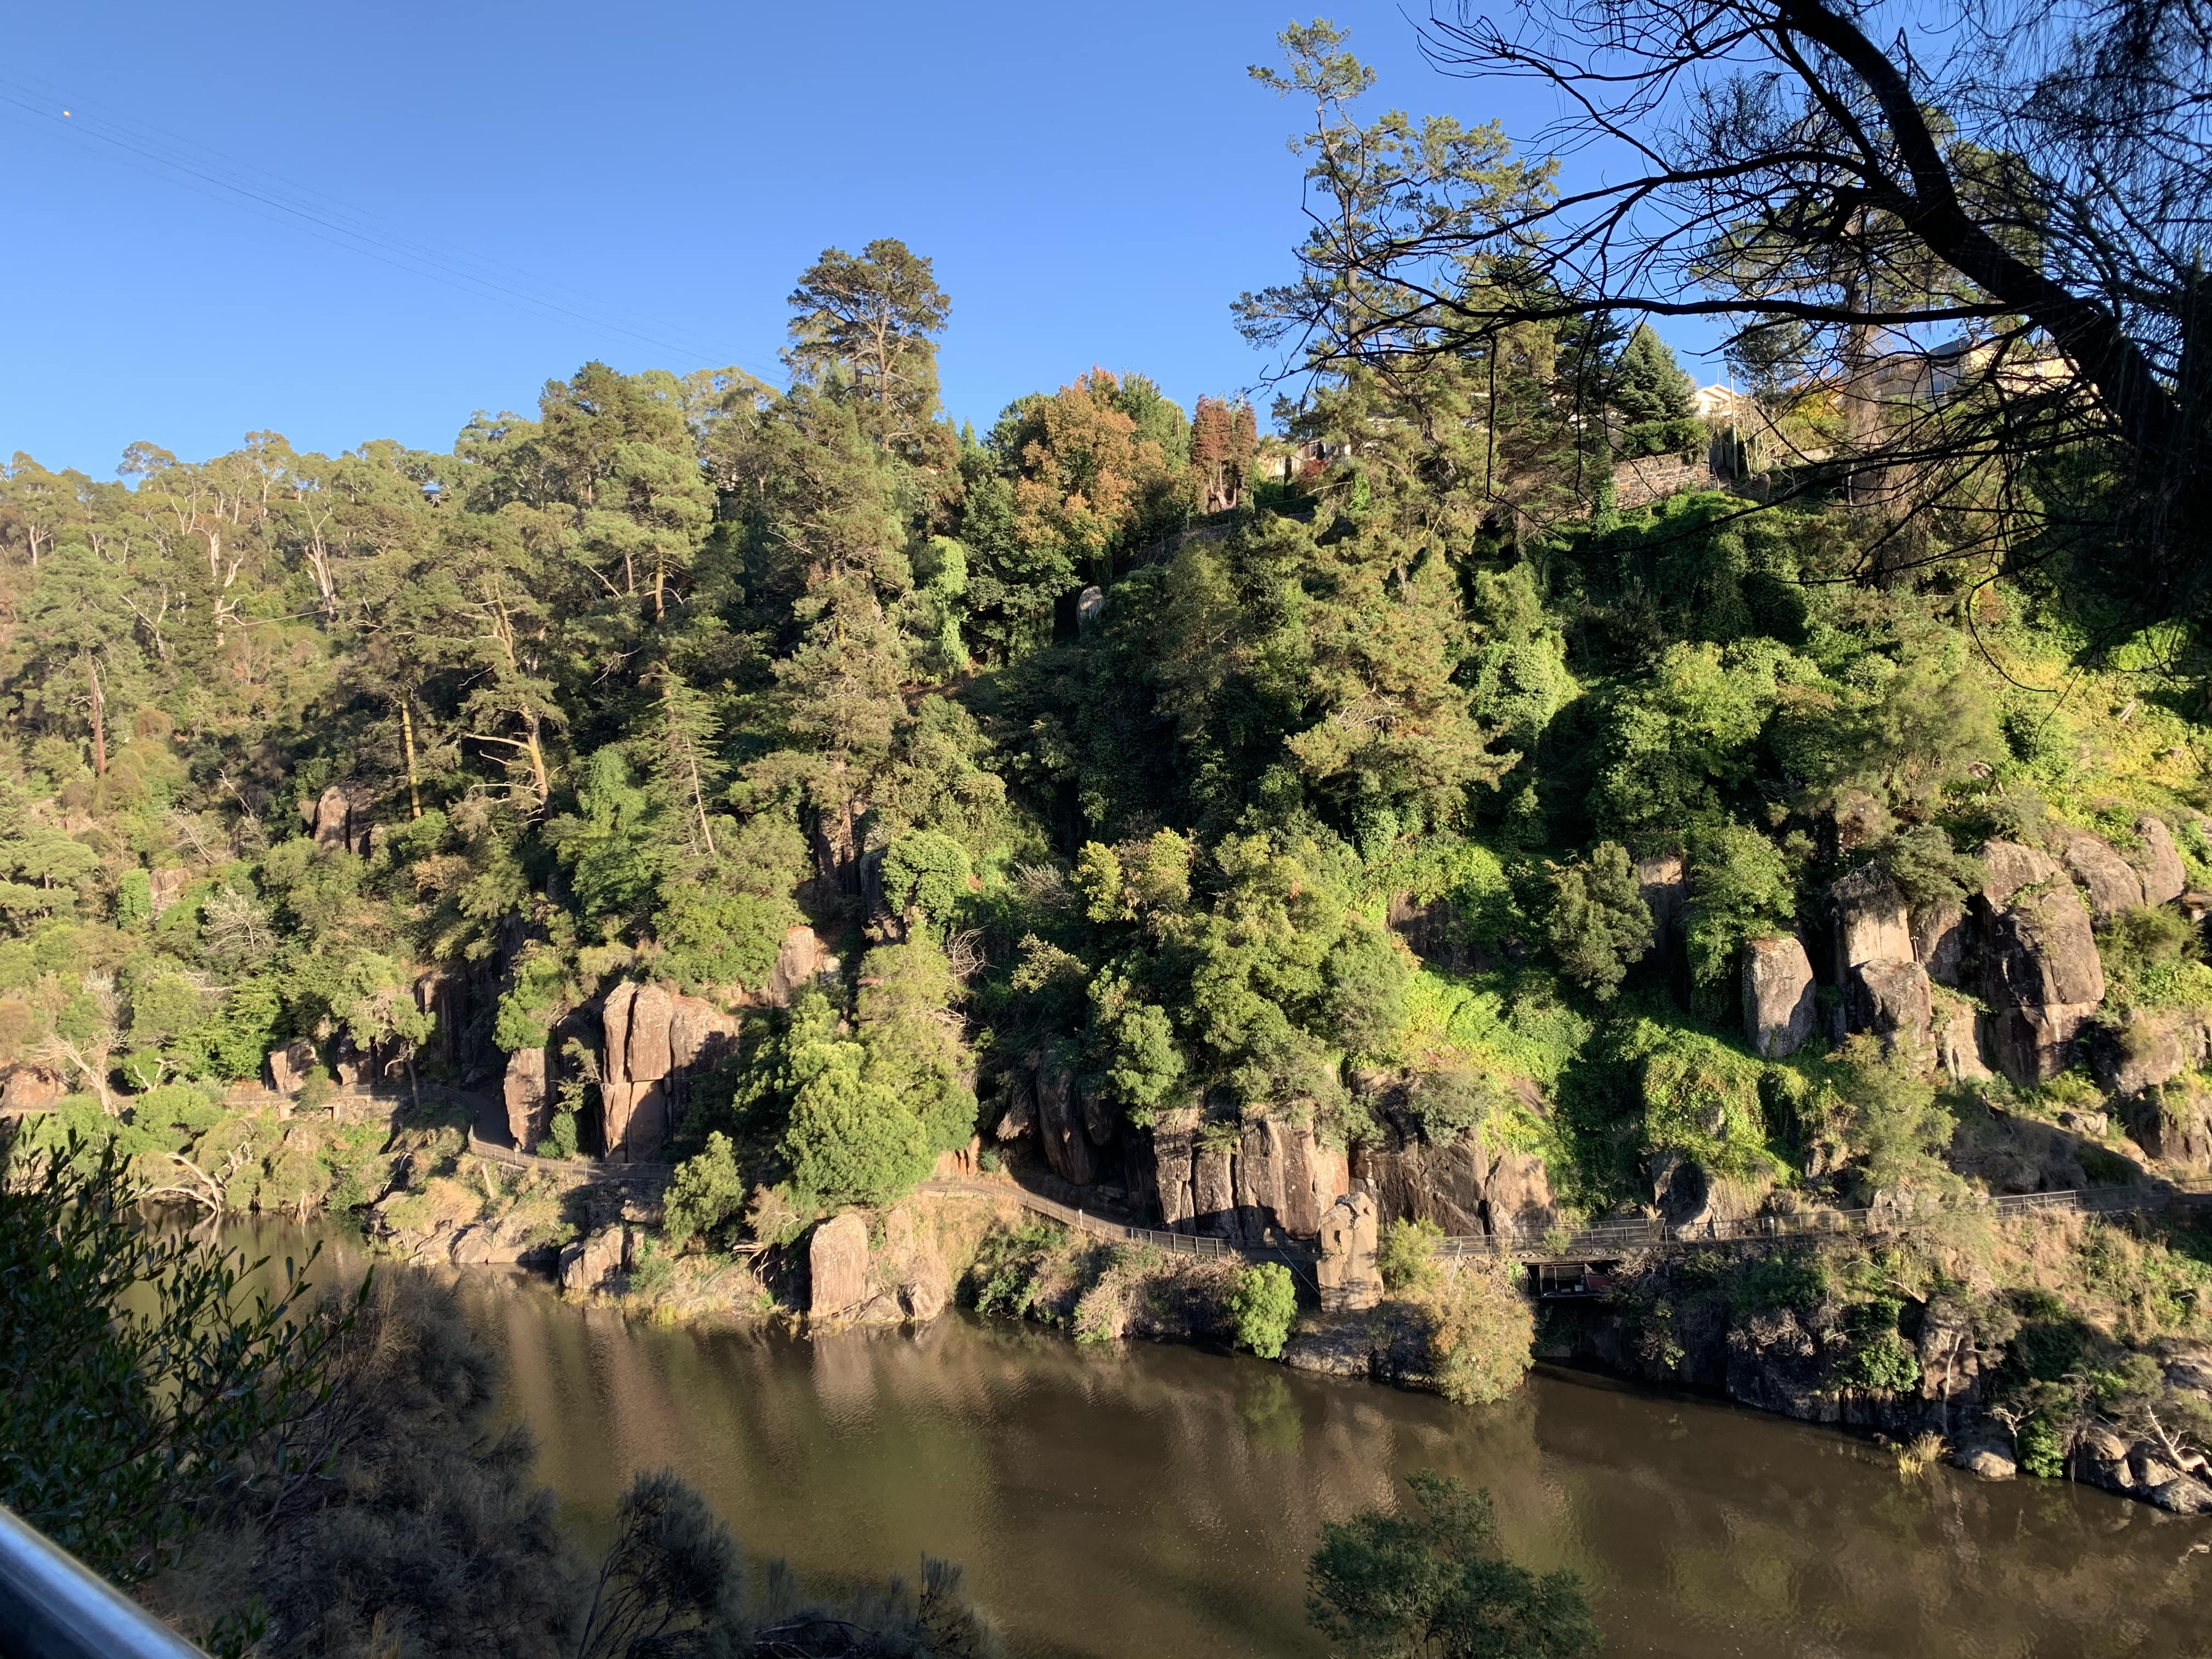 View of the Cataract Walk from the Zig Zag Trail, Launceston, Tasmania